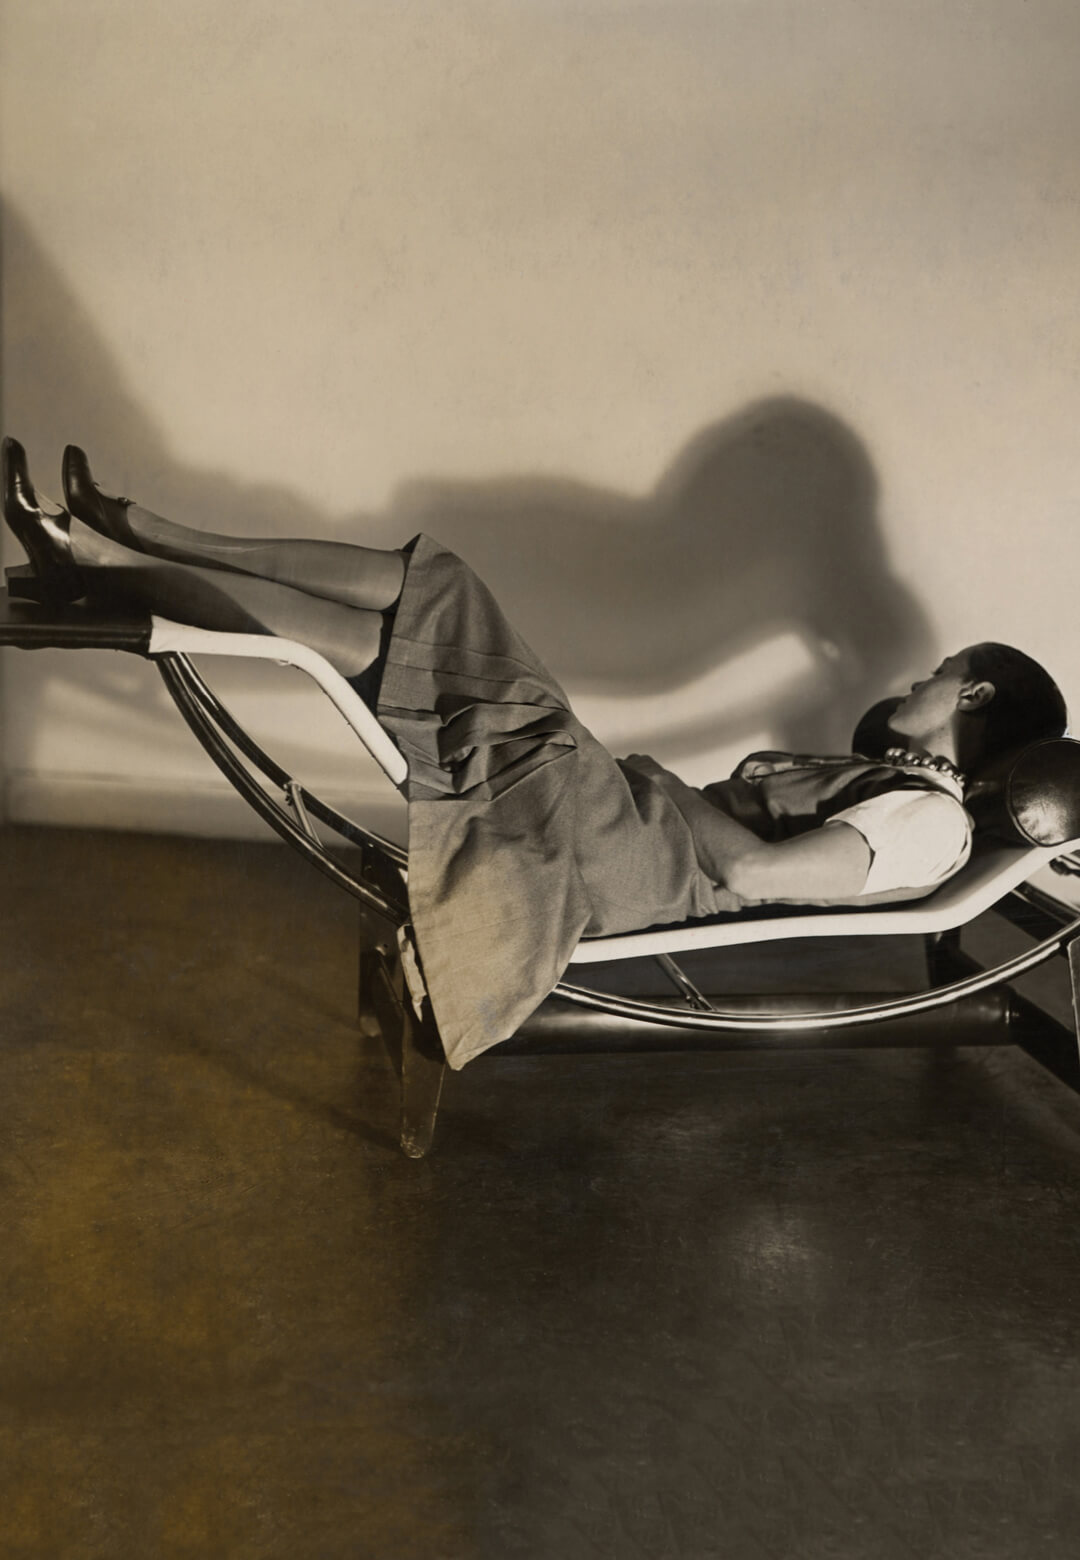 Charlotte Perriand on the Chaise longue basculante, B306, 1929 – Le Corbusier, P. Jeanneret, C. Perriand, circa 1928 | Charlotte Perriand | Charlotte Perriand: The Modern Life | STIRworld